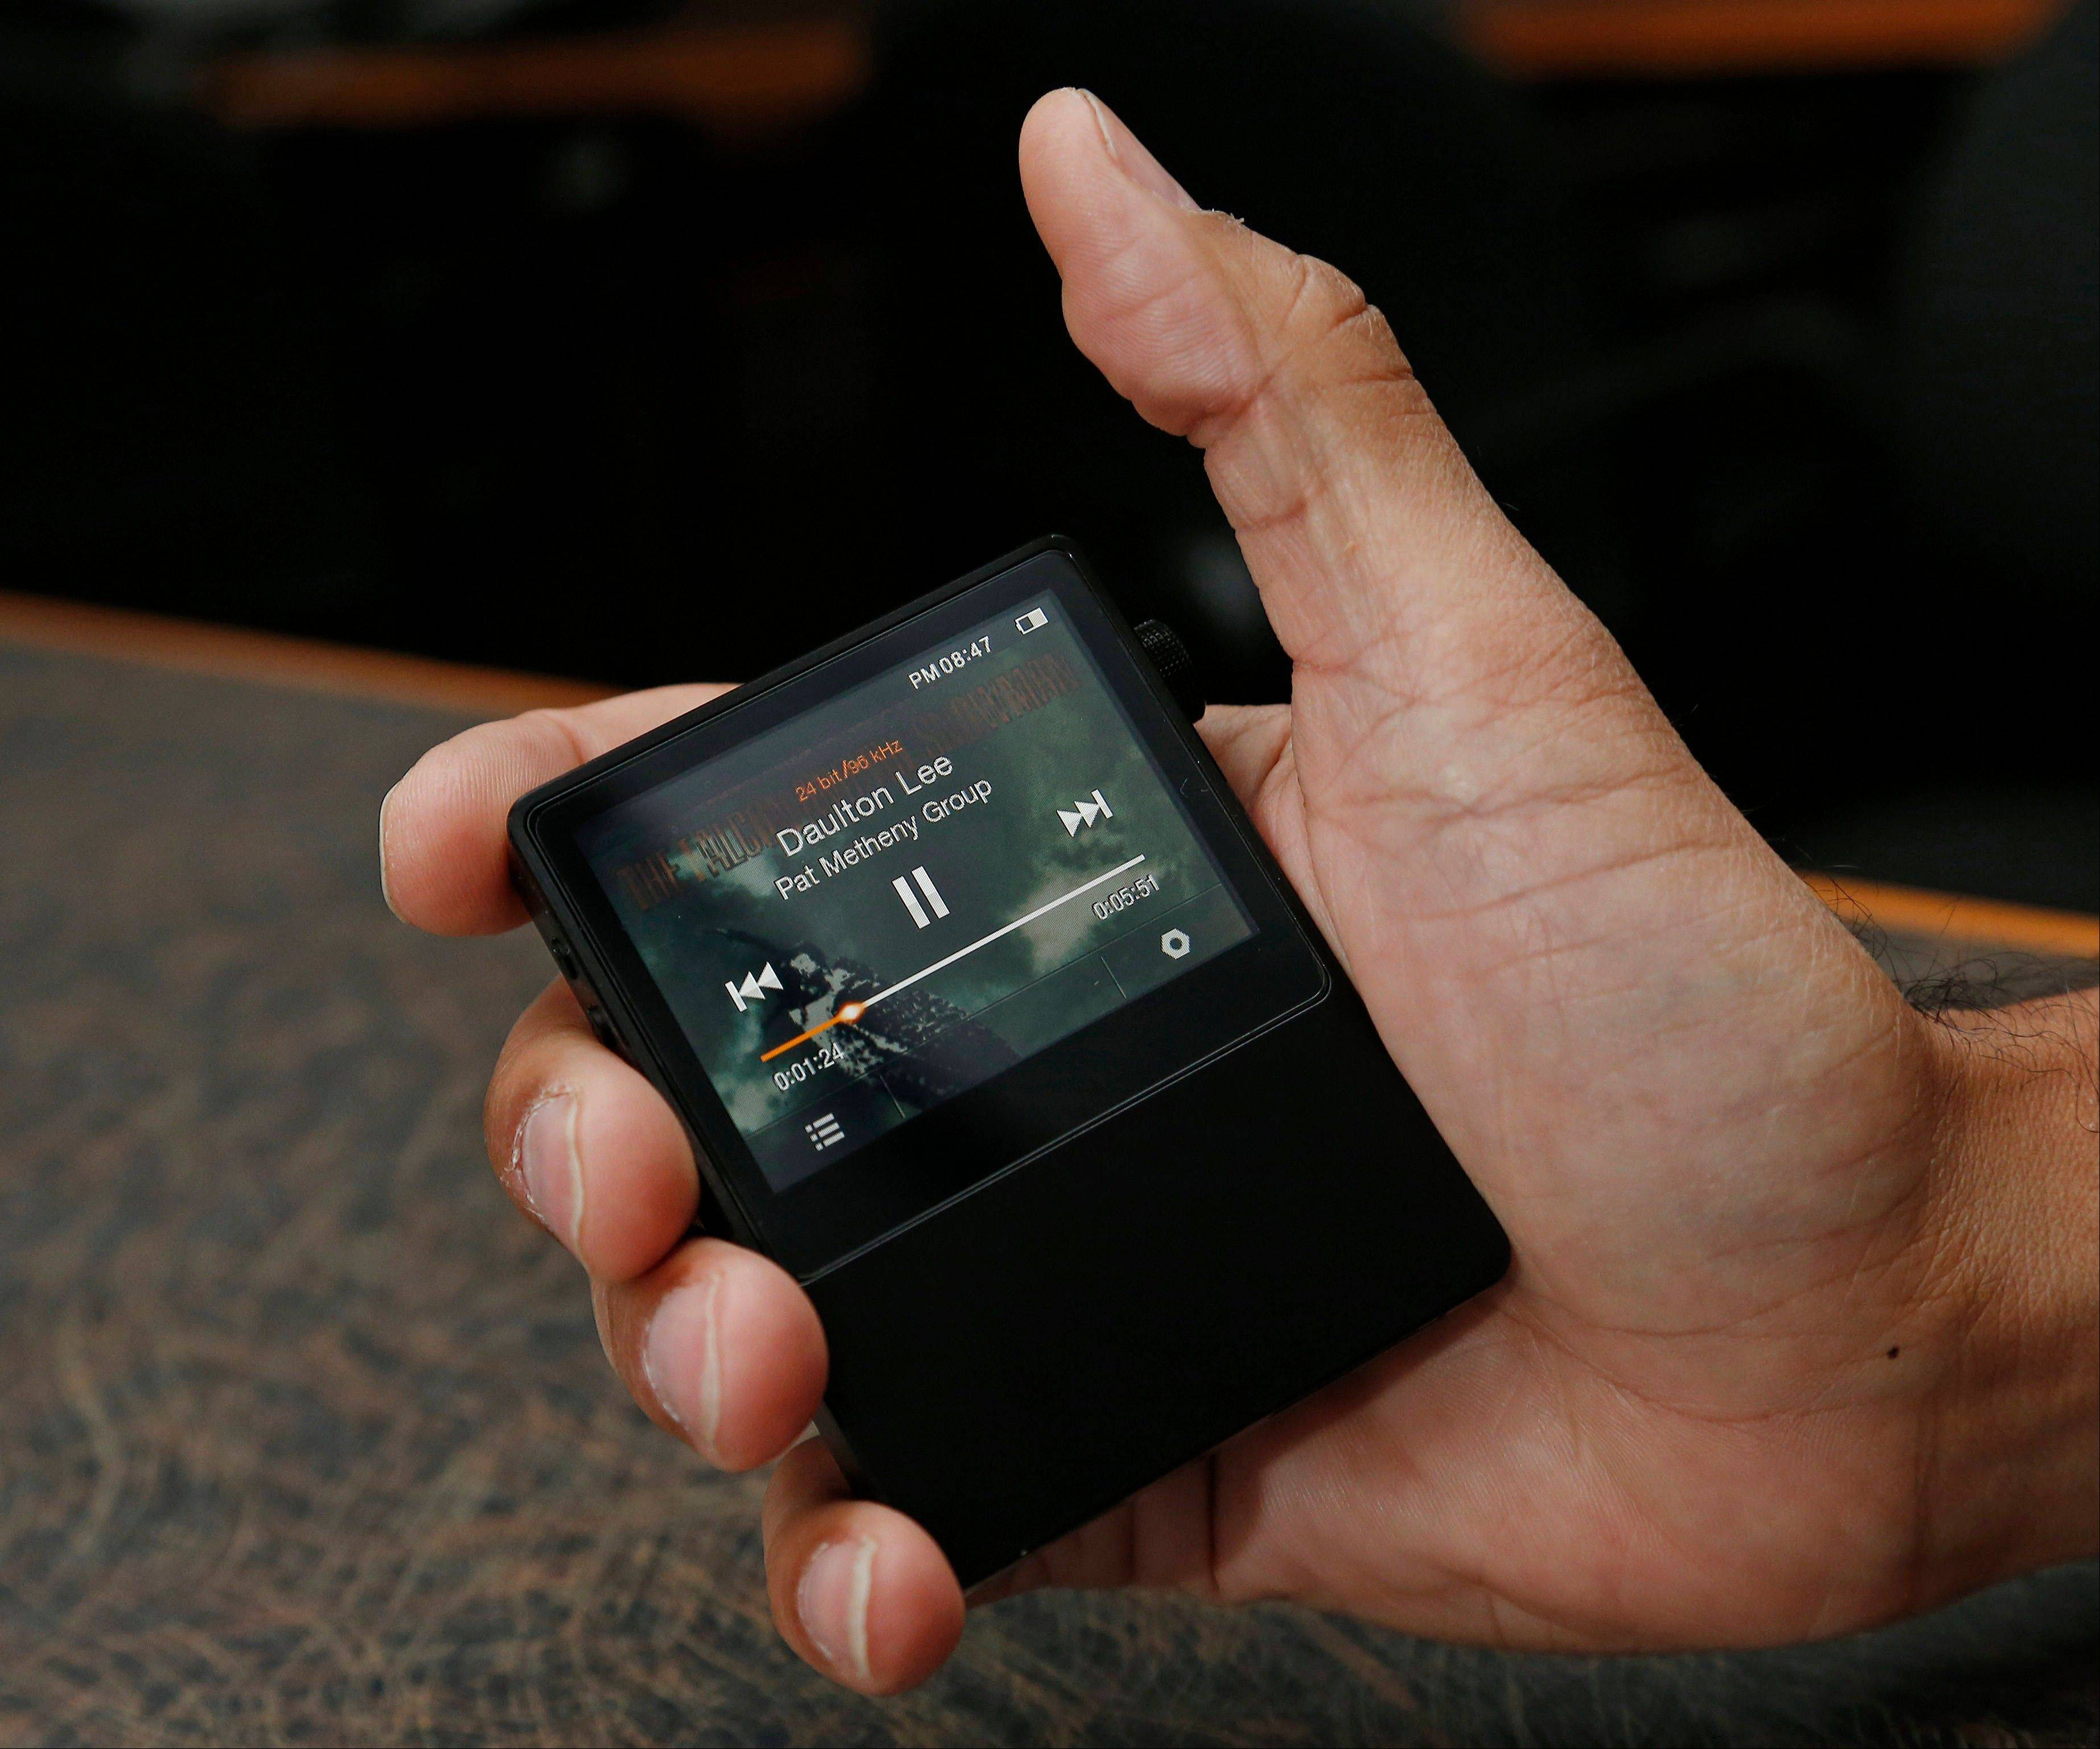 The Astell & Kern AK100 is a portable music player retailing for $699 and is capable of playing 24-bit, audiophile-quality digital music files.